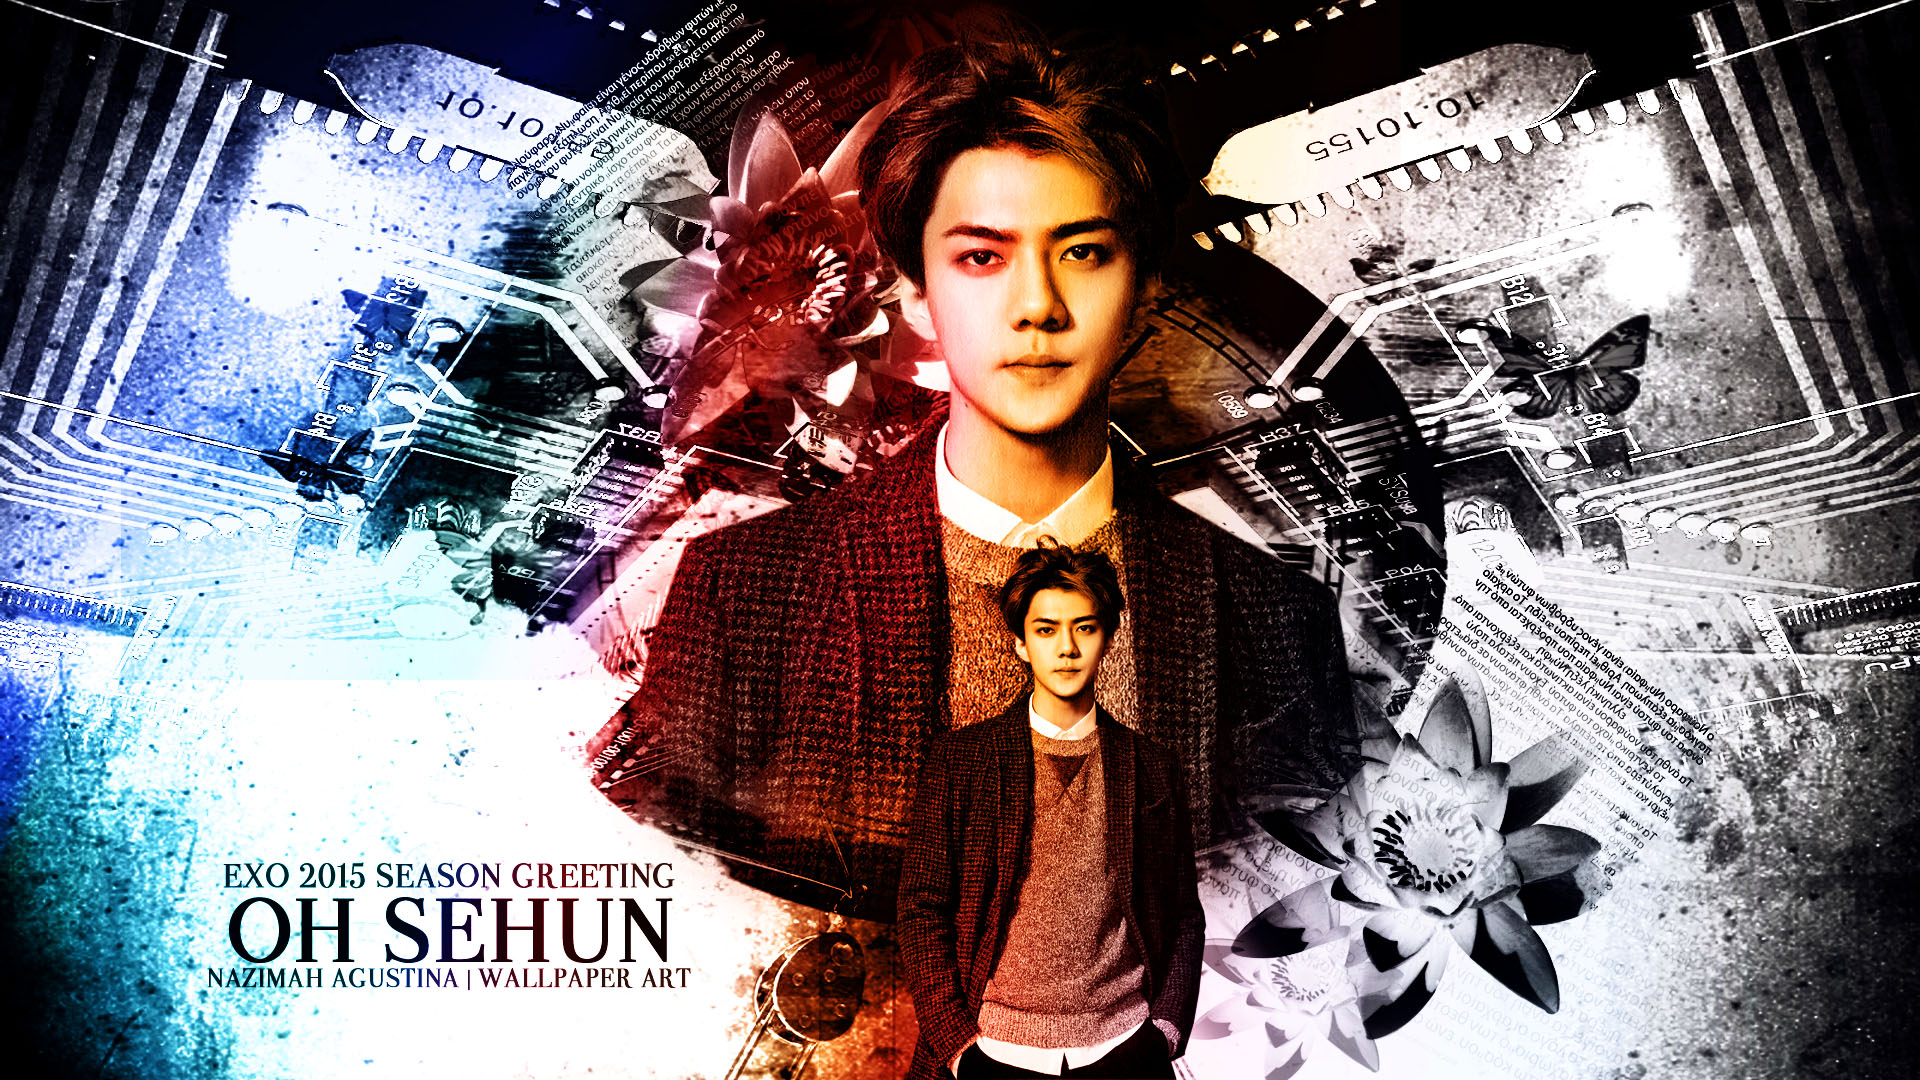 Just For Fun | ♥ SMTown Graphic Design and fanfic